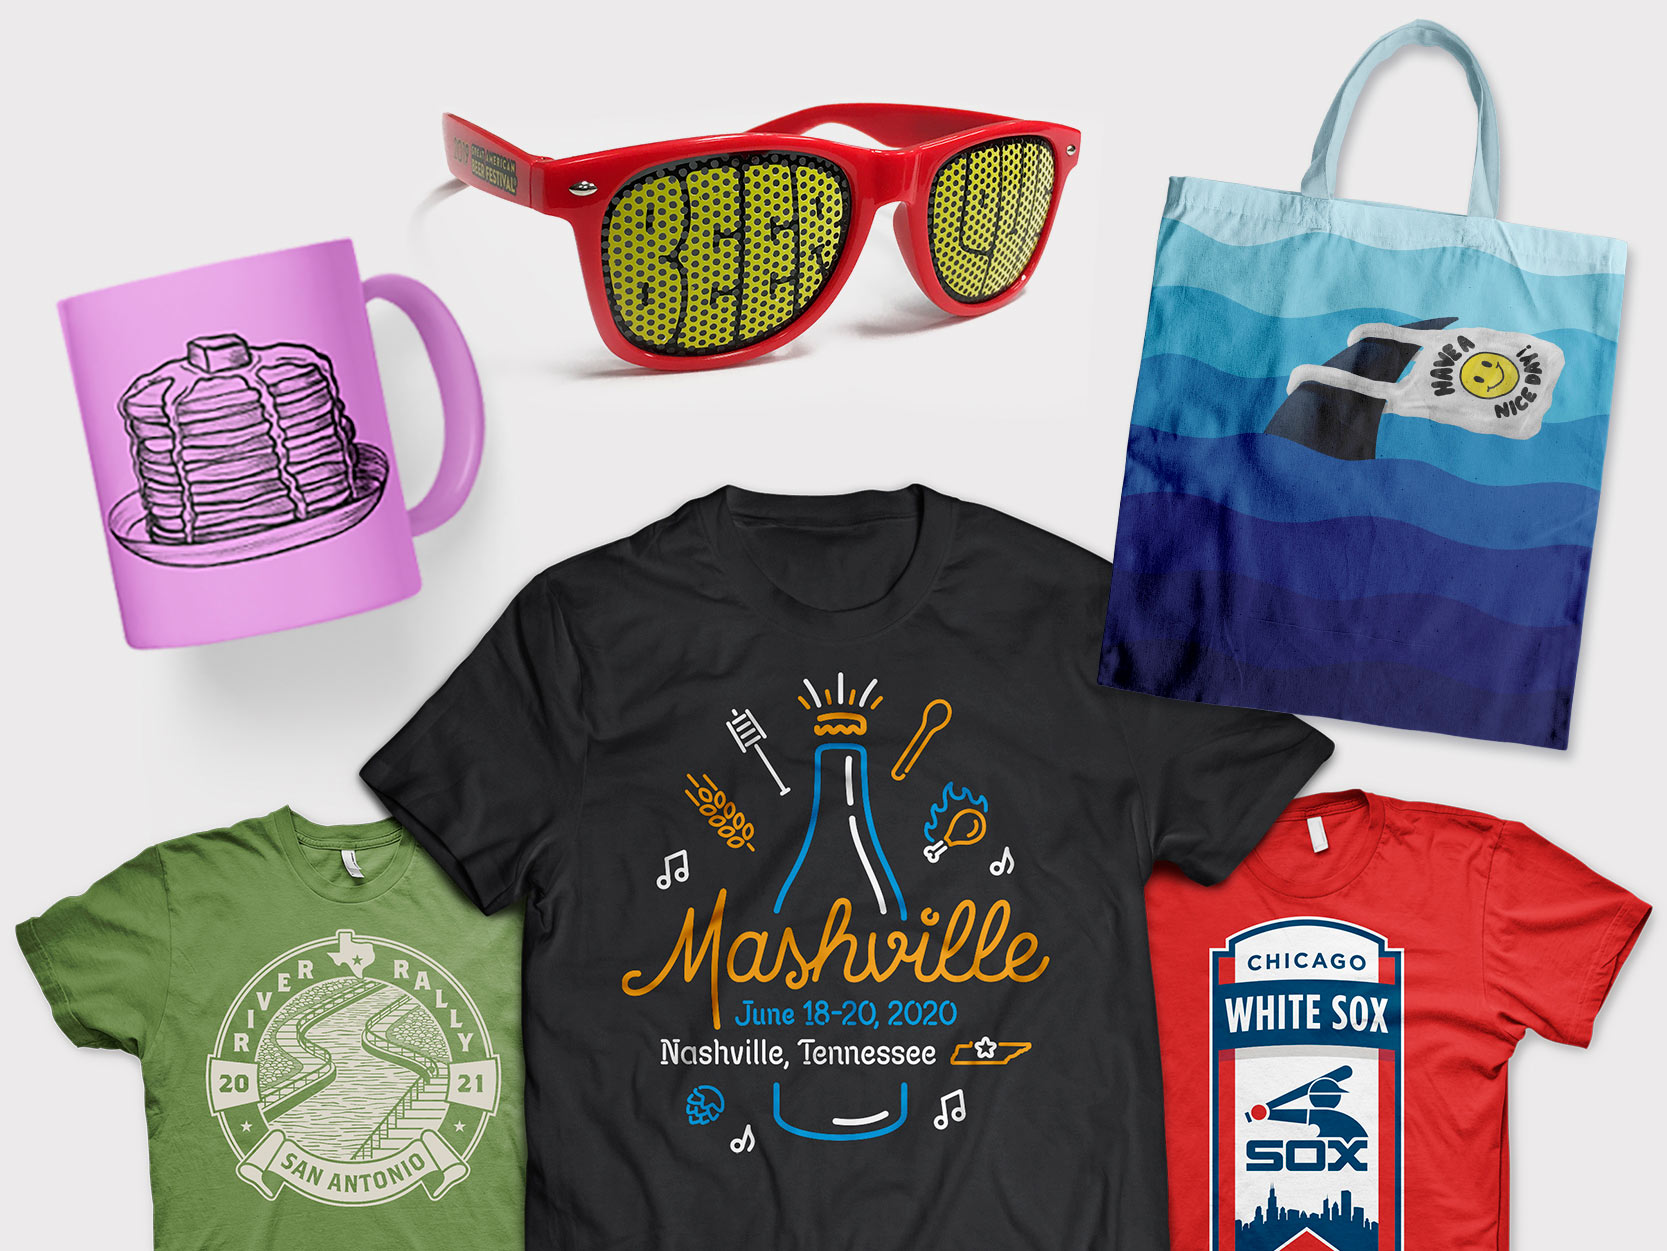 """A collage of merchandise examples including a pink coffee mug with an illustration of pancakes on it, red sunglasses with the words """"Beer Love"""" on the lenses, 3 t-shirts with various graphics on them and a tote bag with an illustration of a shark's fin carrying a plastic bag that reads, """"Have a nice day!""""."""